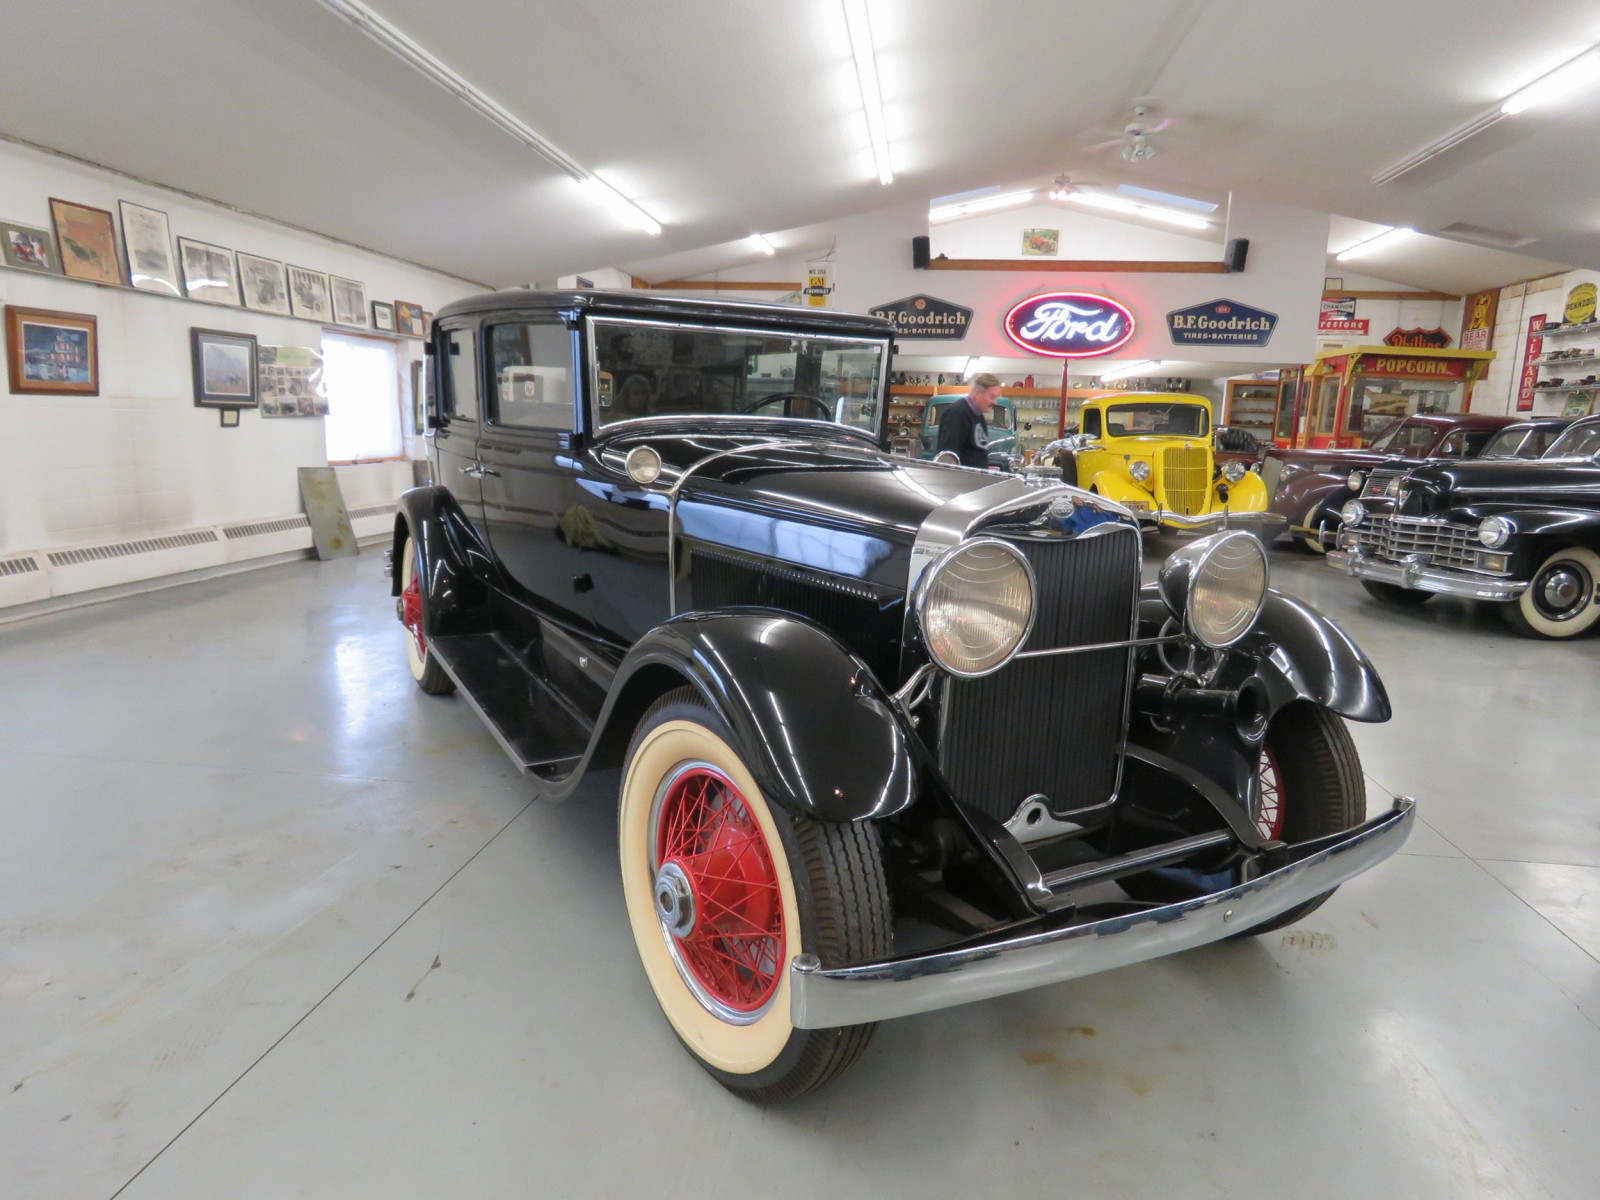 1929 Lincoln Model L 4dr Sedan - Image 3